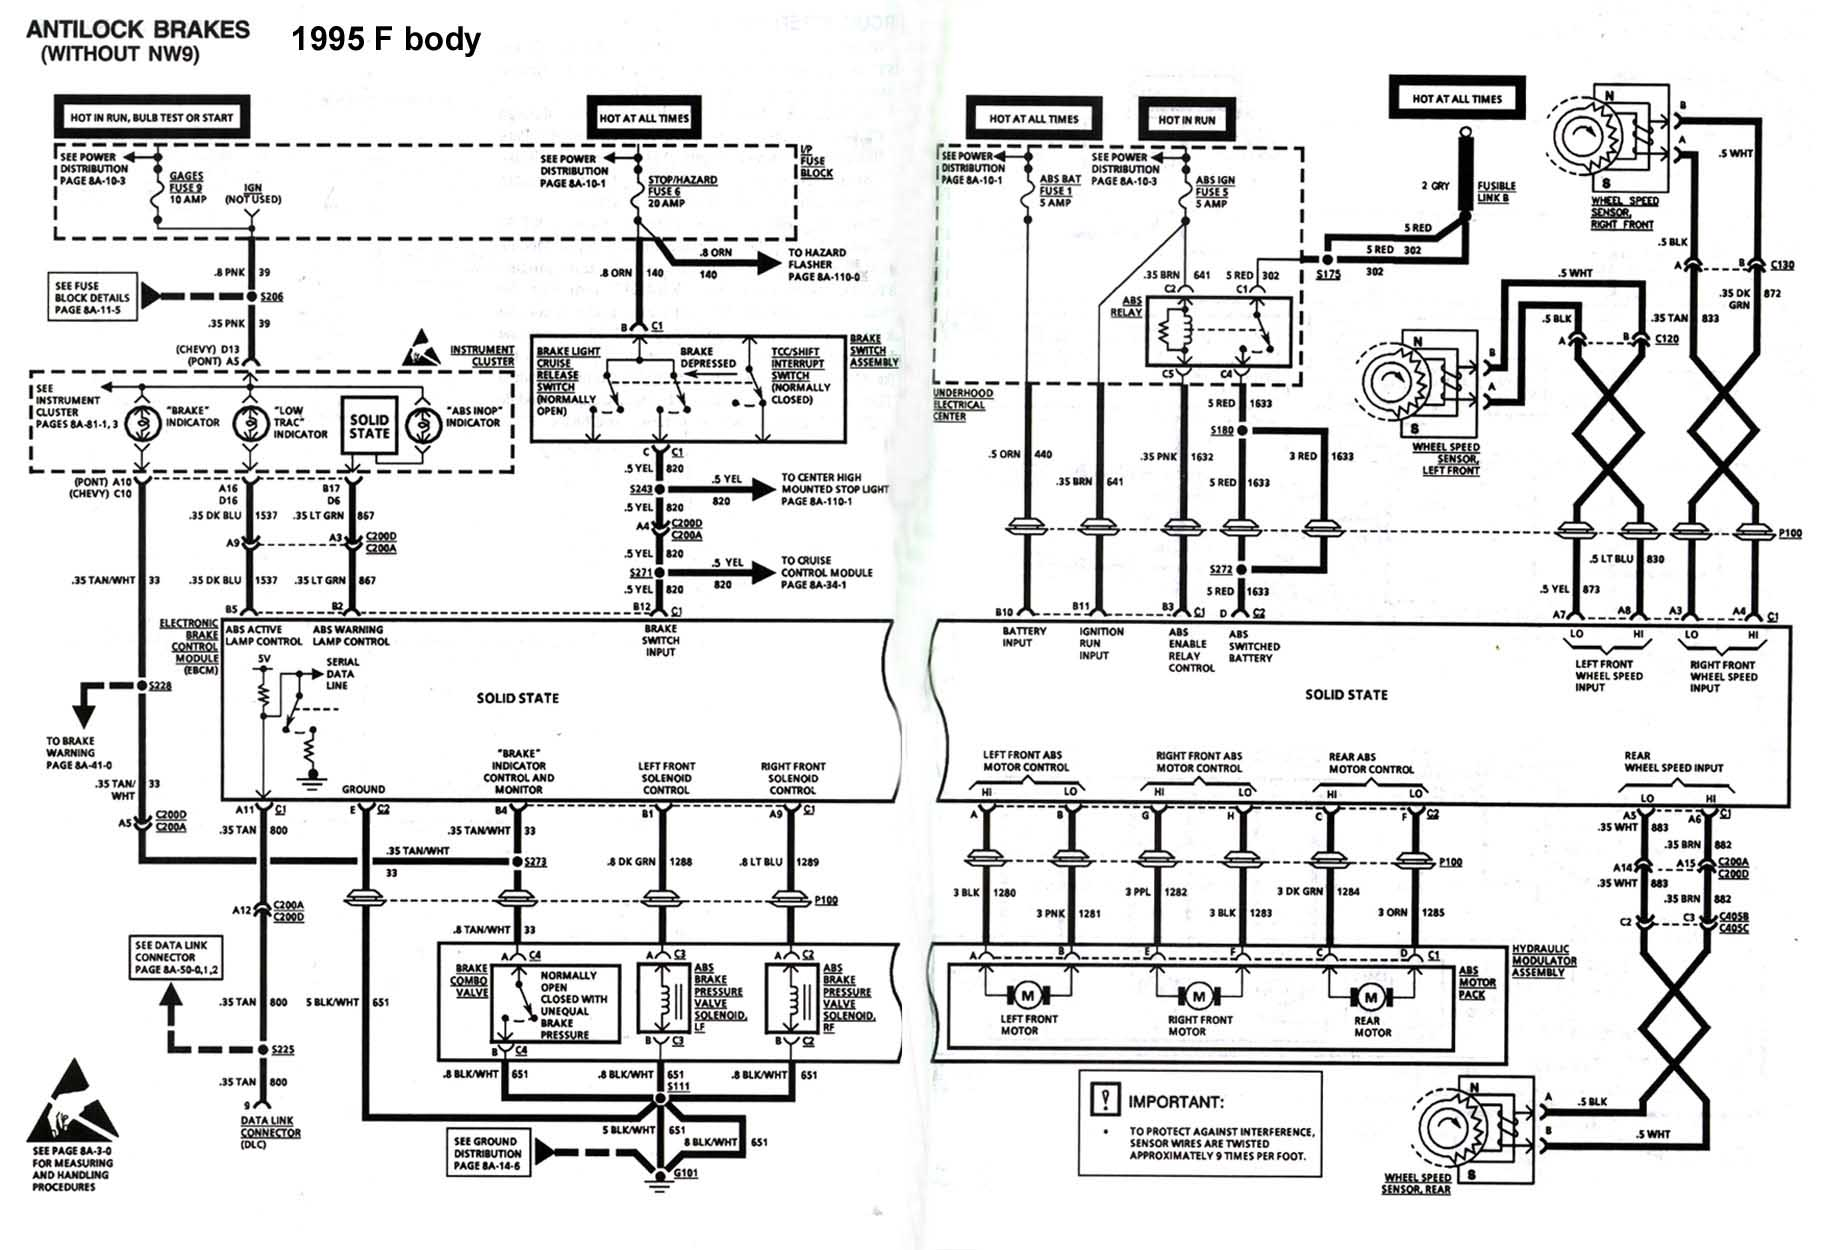 hight resolution of 2002 camaro wiring diagram wiring diagram schematics 2002 camaro steering column diagram 2002 camaro wiring diagram